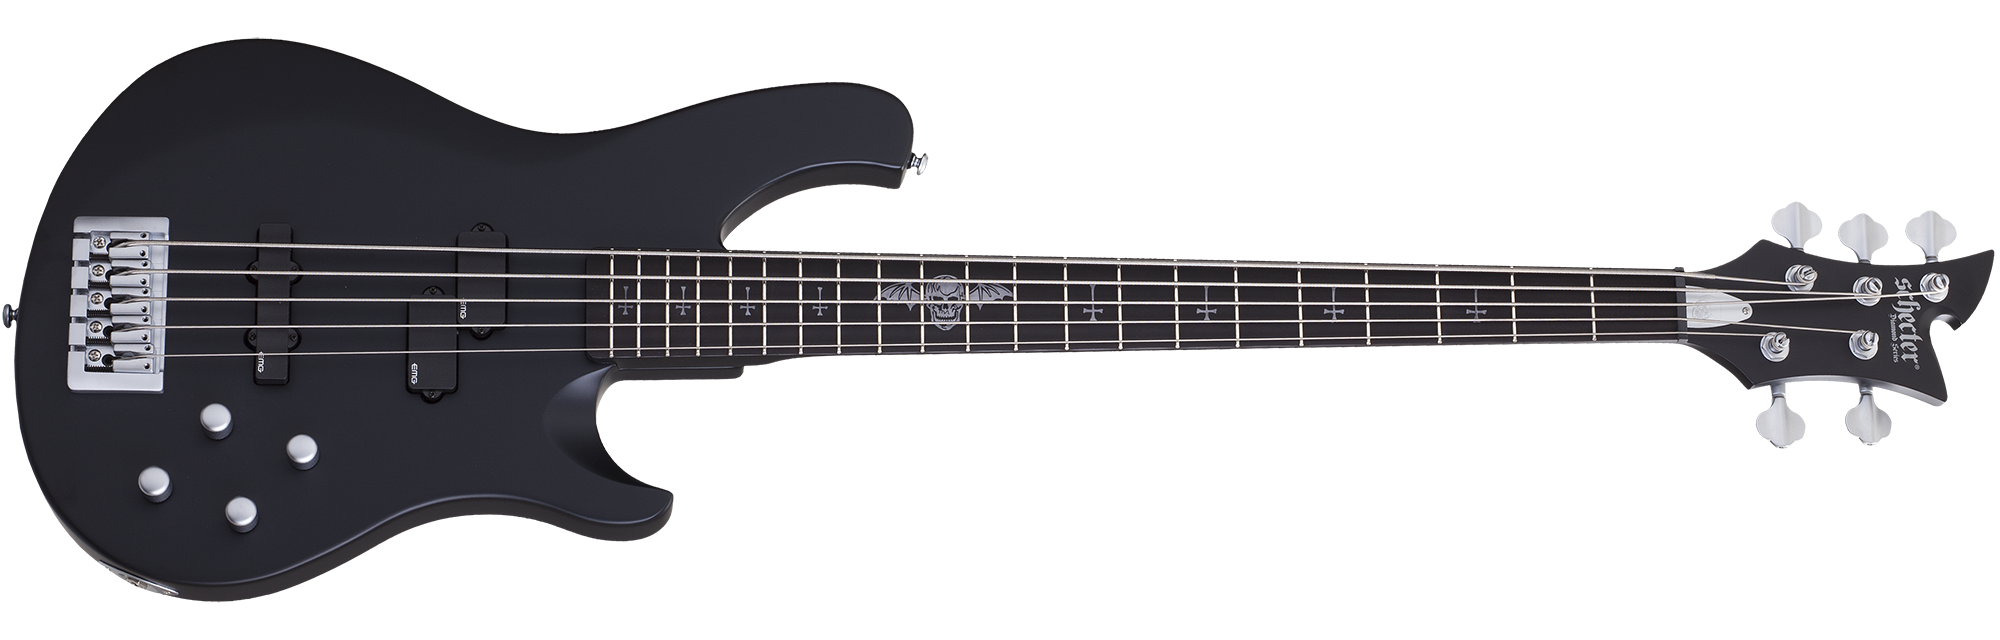 Johnny Christ-5 Bass Satin Black (SBK) SKU #278